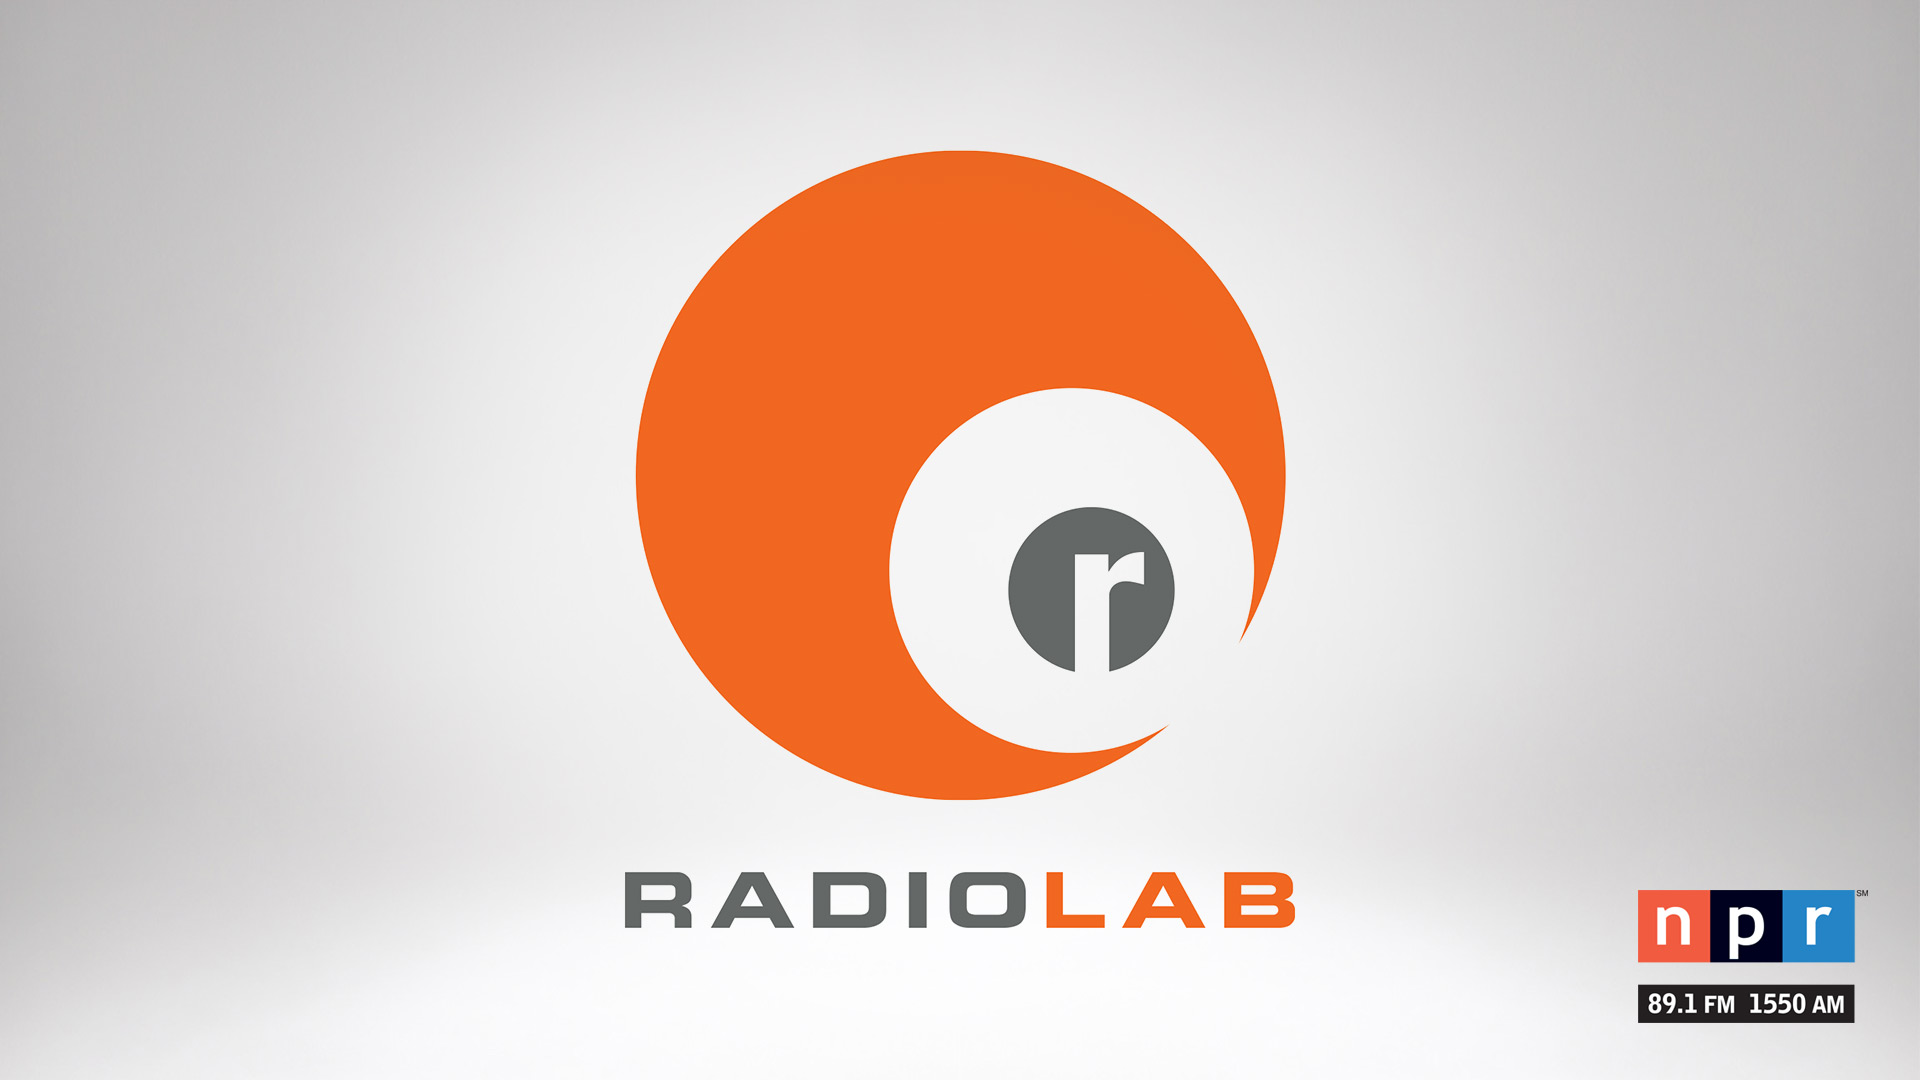 Radio Lab airs Sundays on NPR 89.1.